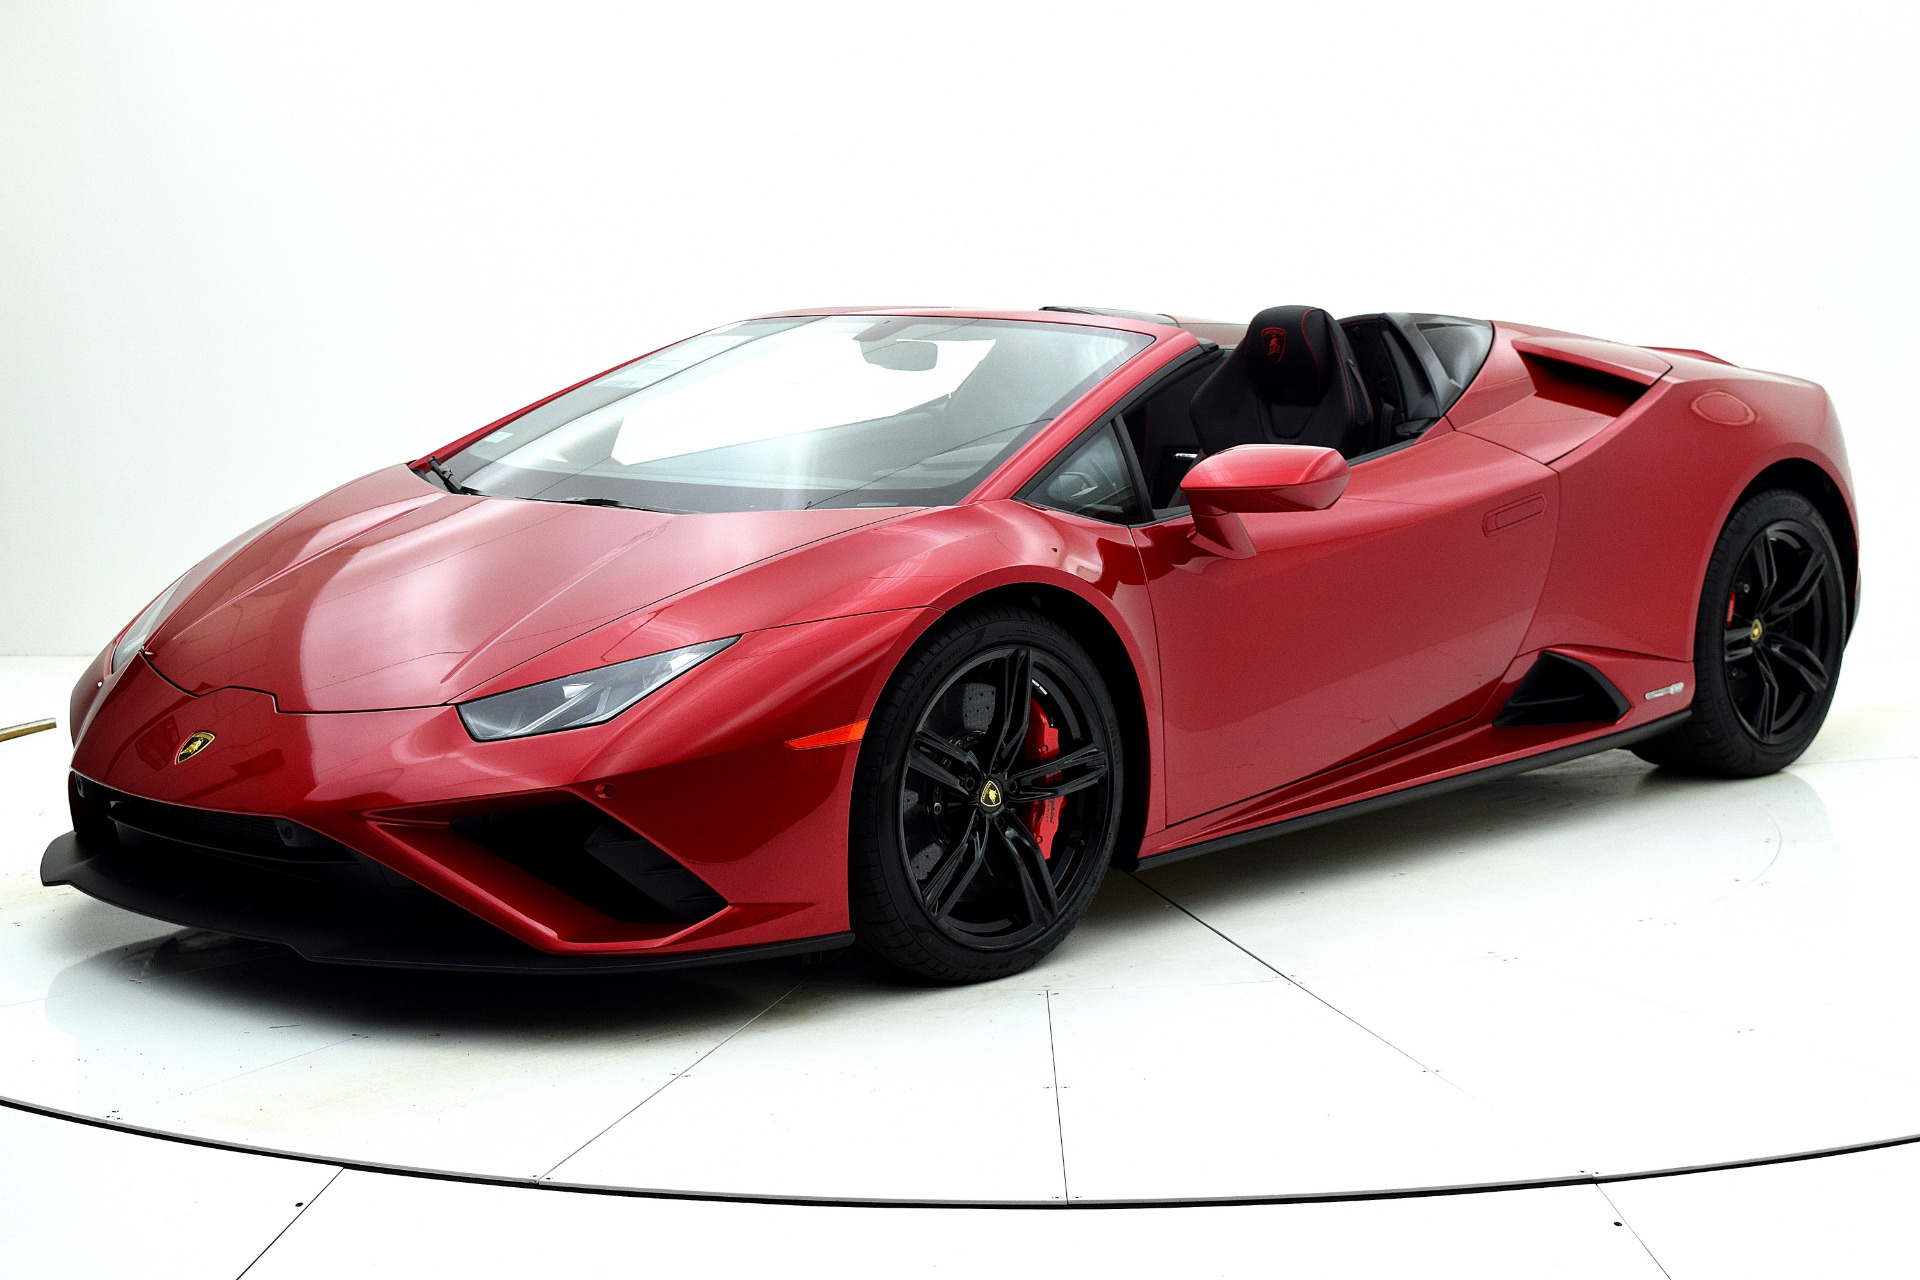 New 2021 Lamborghini Huracan EVO RWD Spyder for sale Sold at F.C. Kerbeck Lamborghini Palmyra N.J. in Palmyra NJ 08065 2